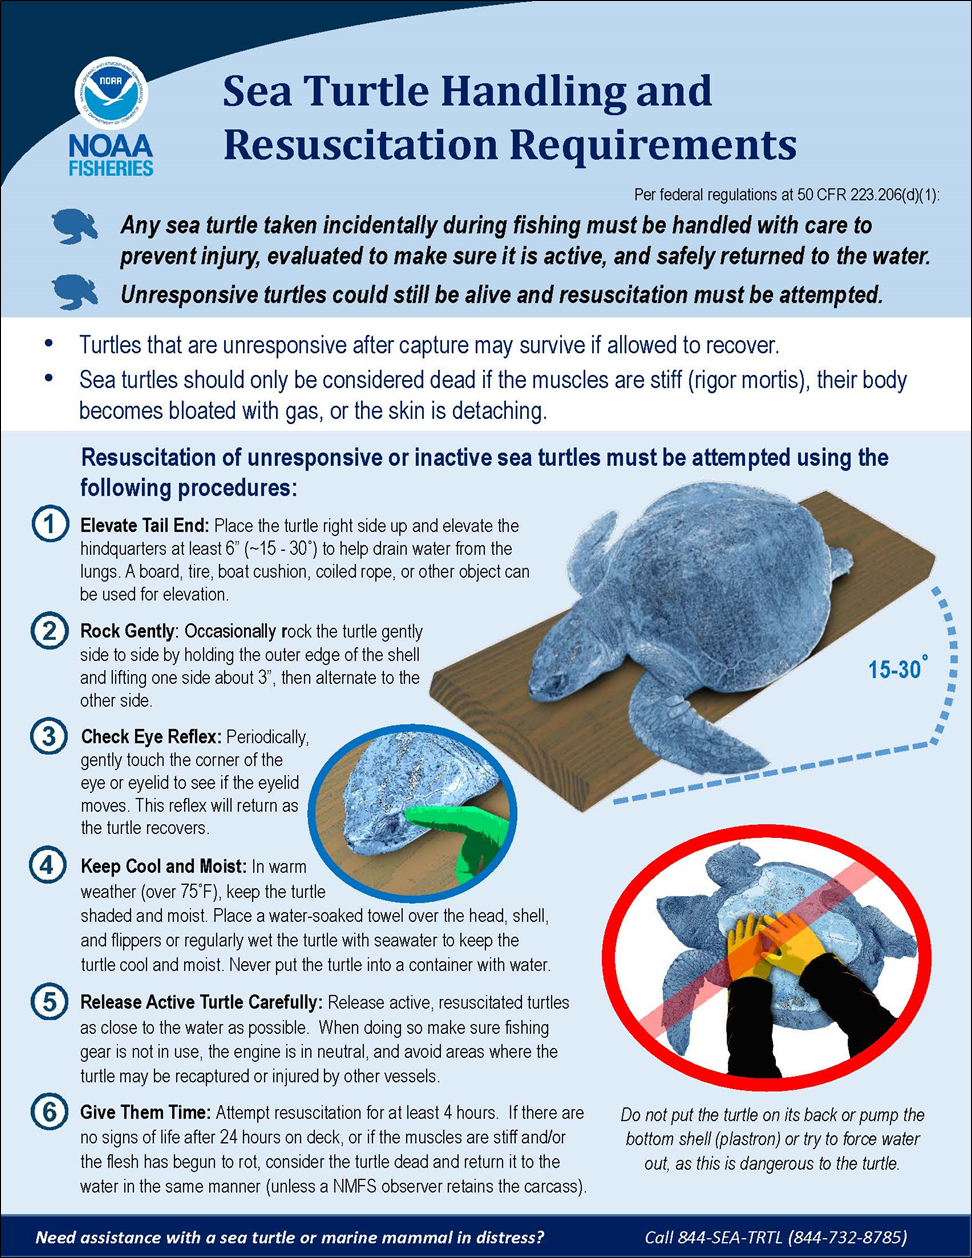 Infographic illustrating proper sea turtle handling and resuscitation requirements